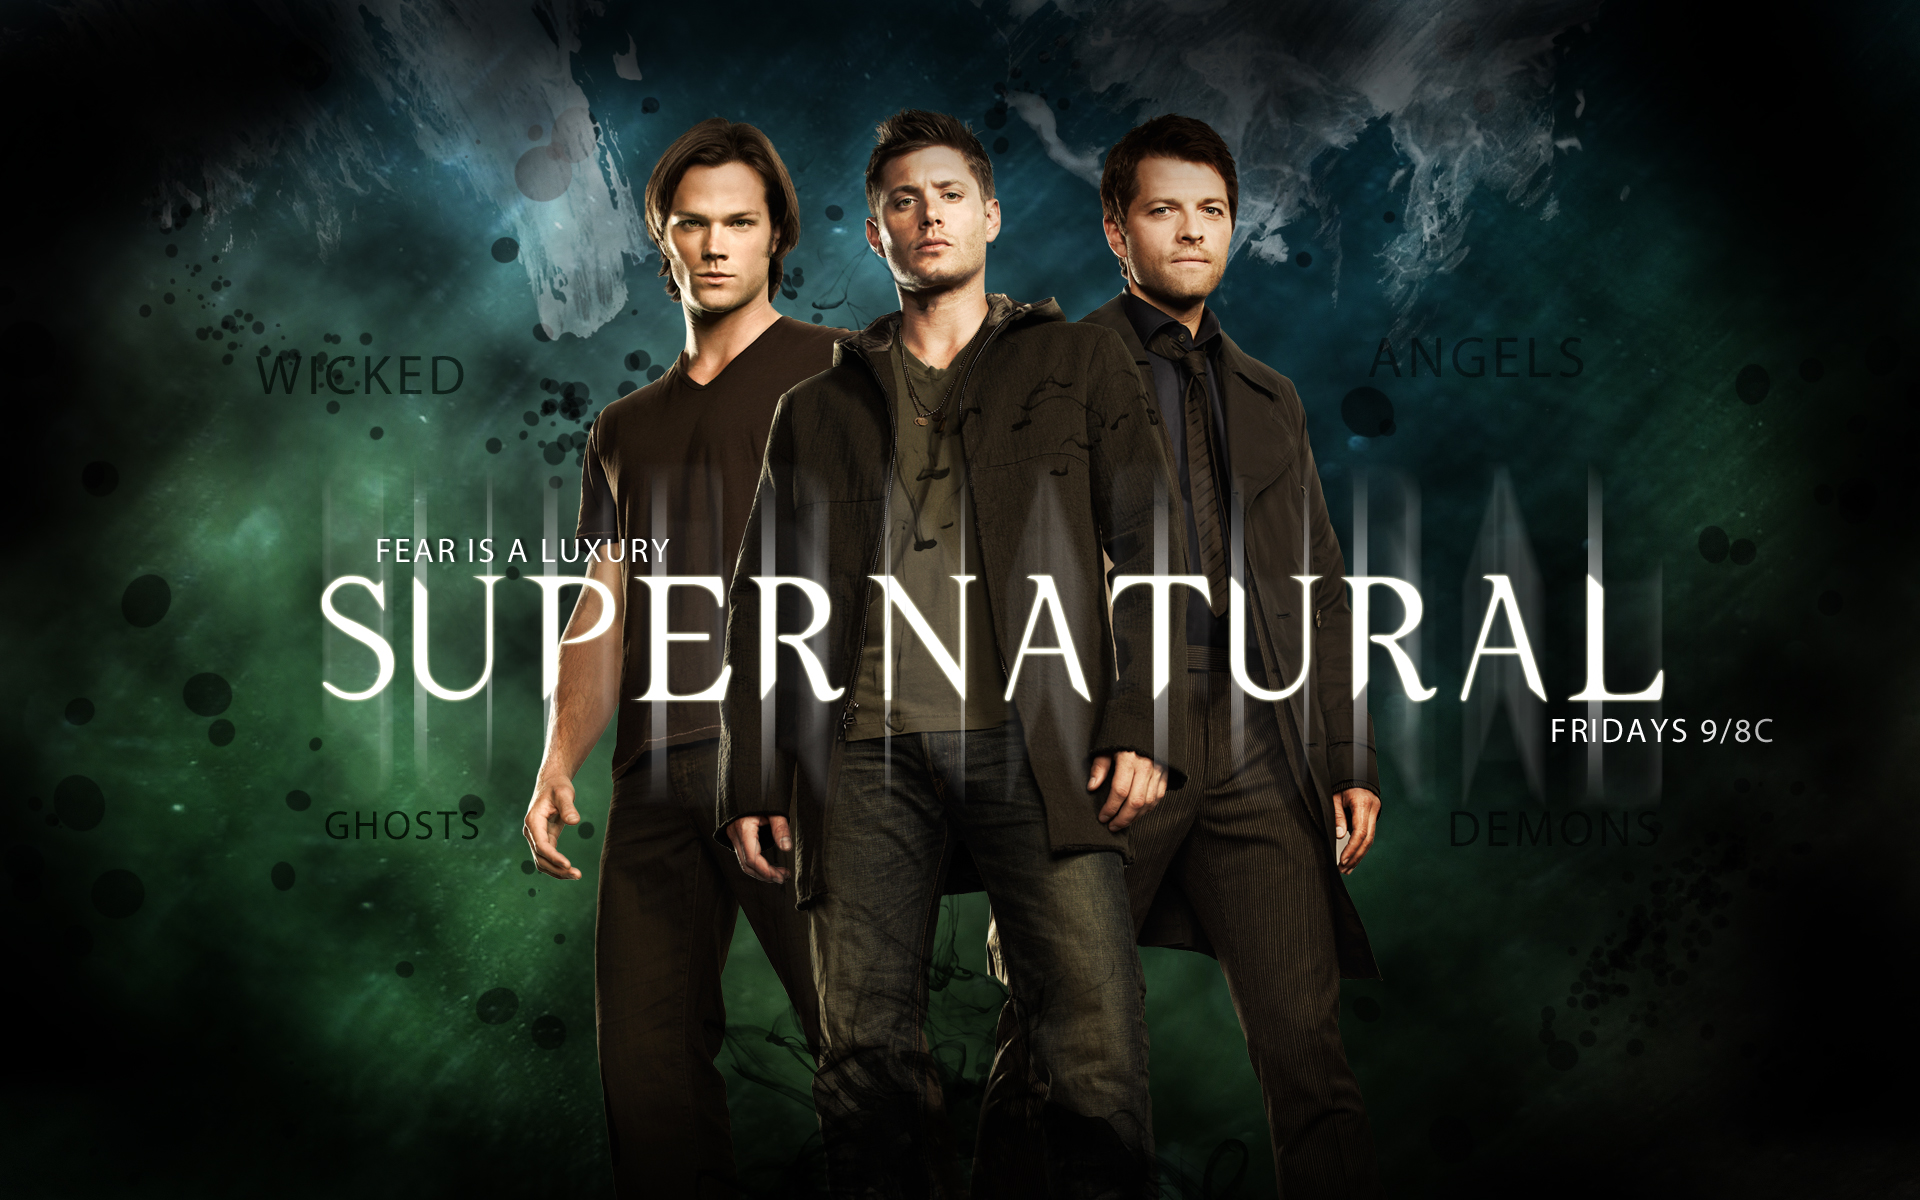 supernatural wallpapers mobile HD Desktop Wallpapers 4k HD